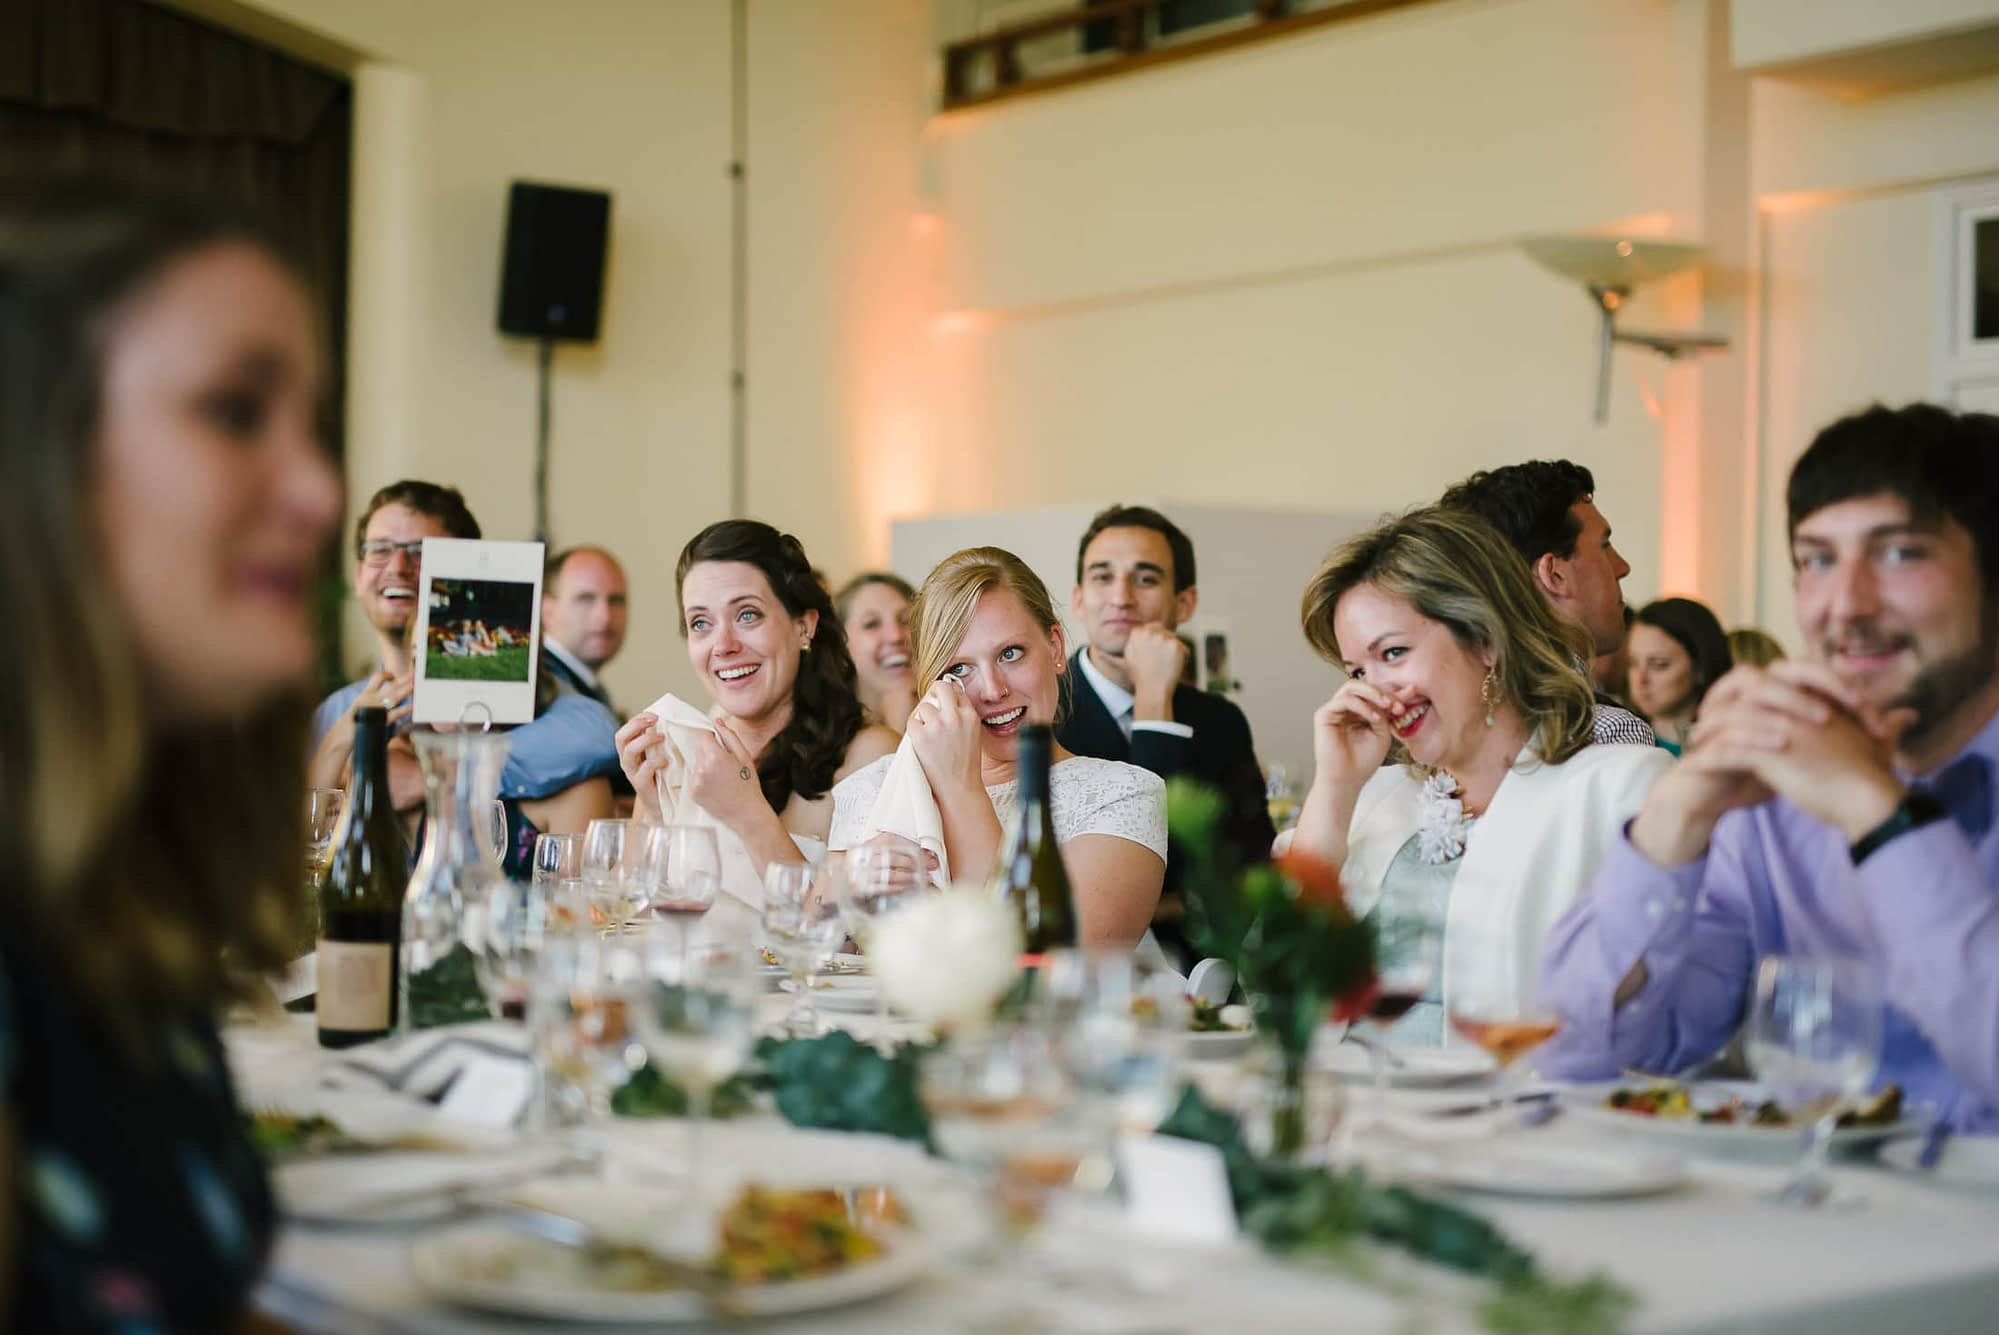 Guests crying at Golden Gate club wedding